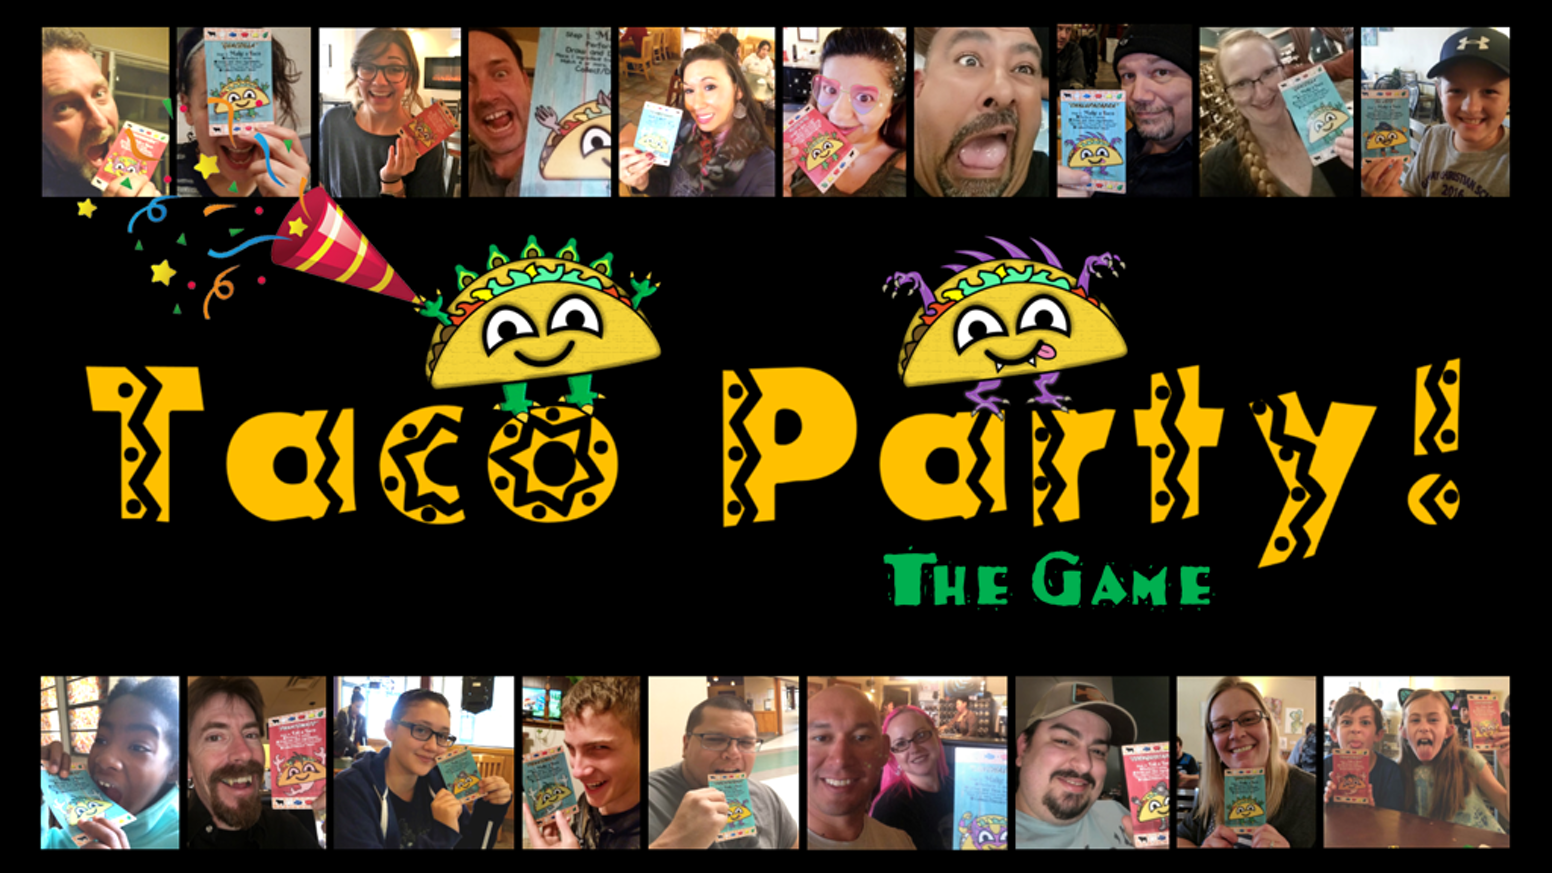 Make a taco then be the first to eat it in this family-friendly party game.  But beware, the other players will be jalapeno business!